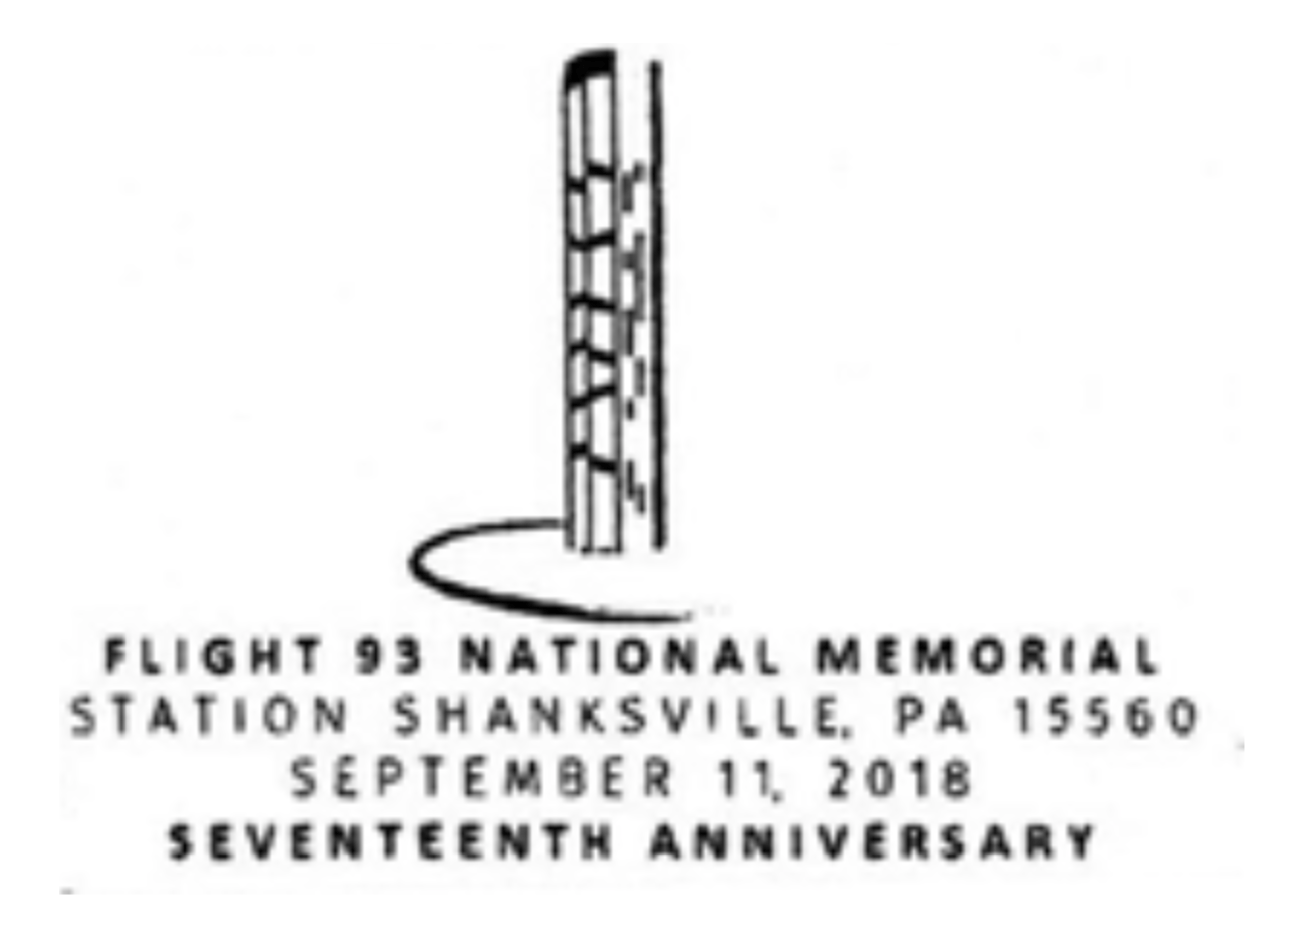 Flight 93 National Memorial Shanksville Pennsylvania